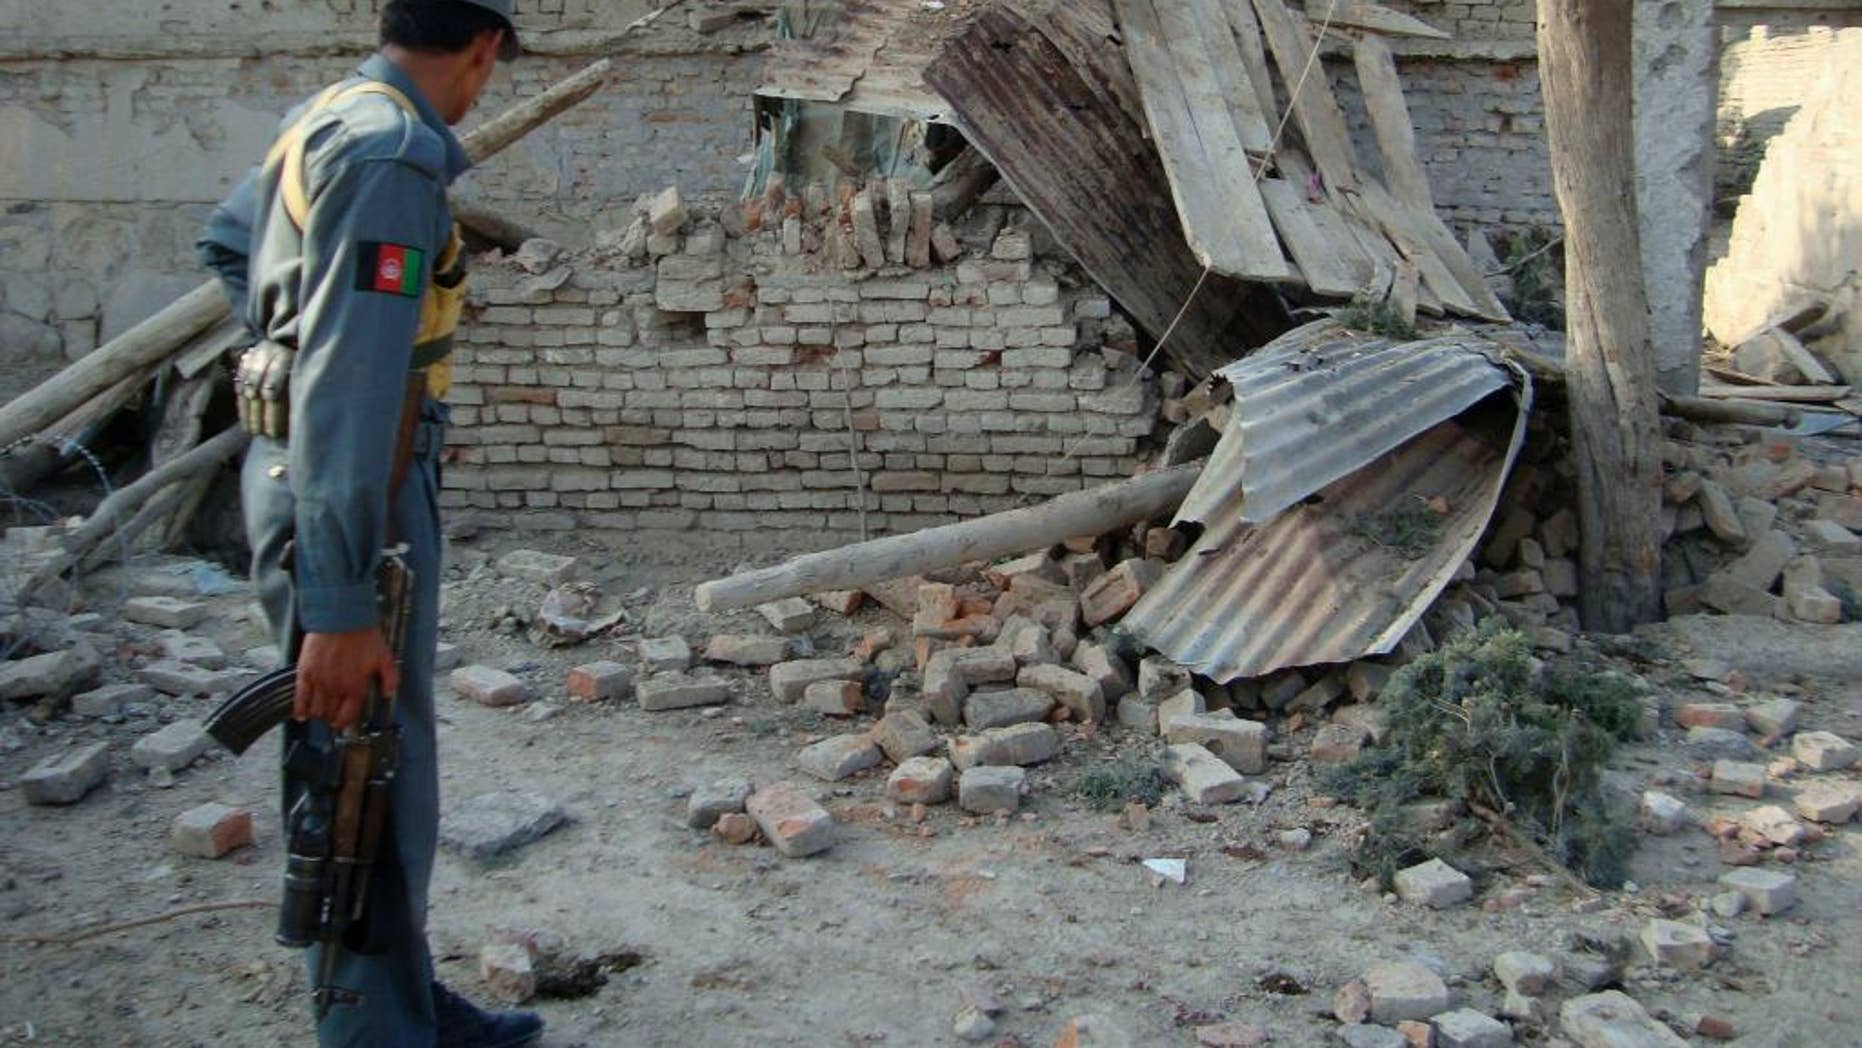 FILE - In this July 25, 2009 file photo, an Afghan police officer looks at a guard post which was damaged in an attack in Khost, east of Kabul, Afghanistan. Recently declassified U.S. government cables suggest Pakistan's intelligence service paid a U.S.-designated terrorist organization $200,000 to carry out one of the deadliest attacks against the CIA in the spy agency's history. But a U.S. intelligence official said the information was uncorroborated and inconsistent with what is known about the 2009 suicide bombing at Camp Chapman in Khost, Afghanistan, near the Pakistani border. (AP Photo/Nishanuddin Khan, File)